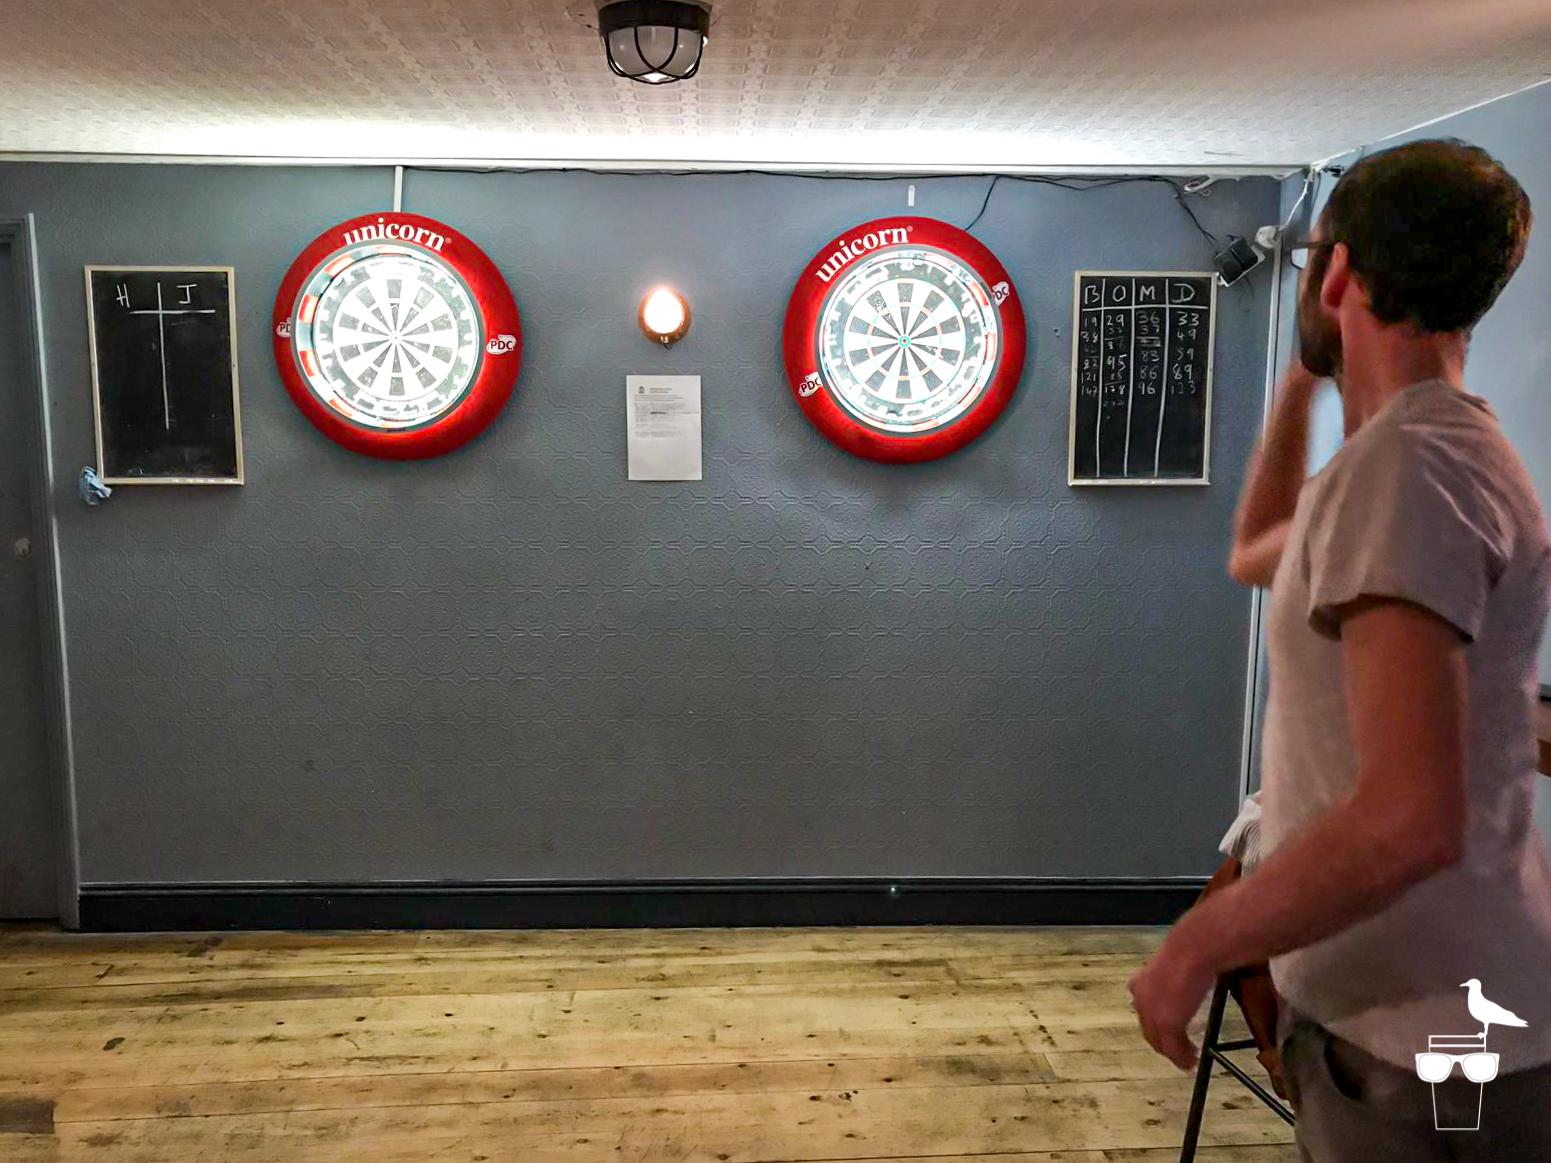 freehaus pub brighton man playing darts